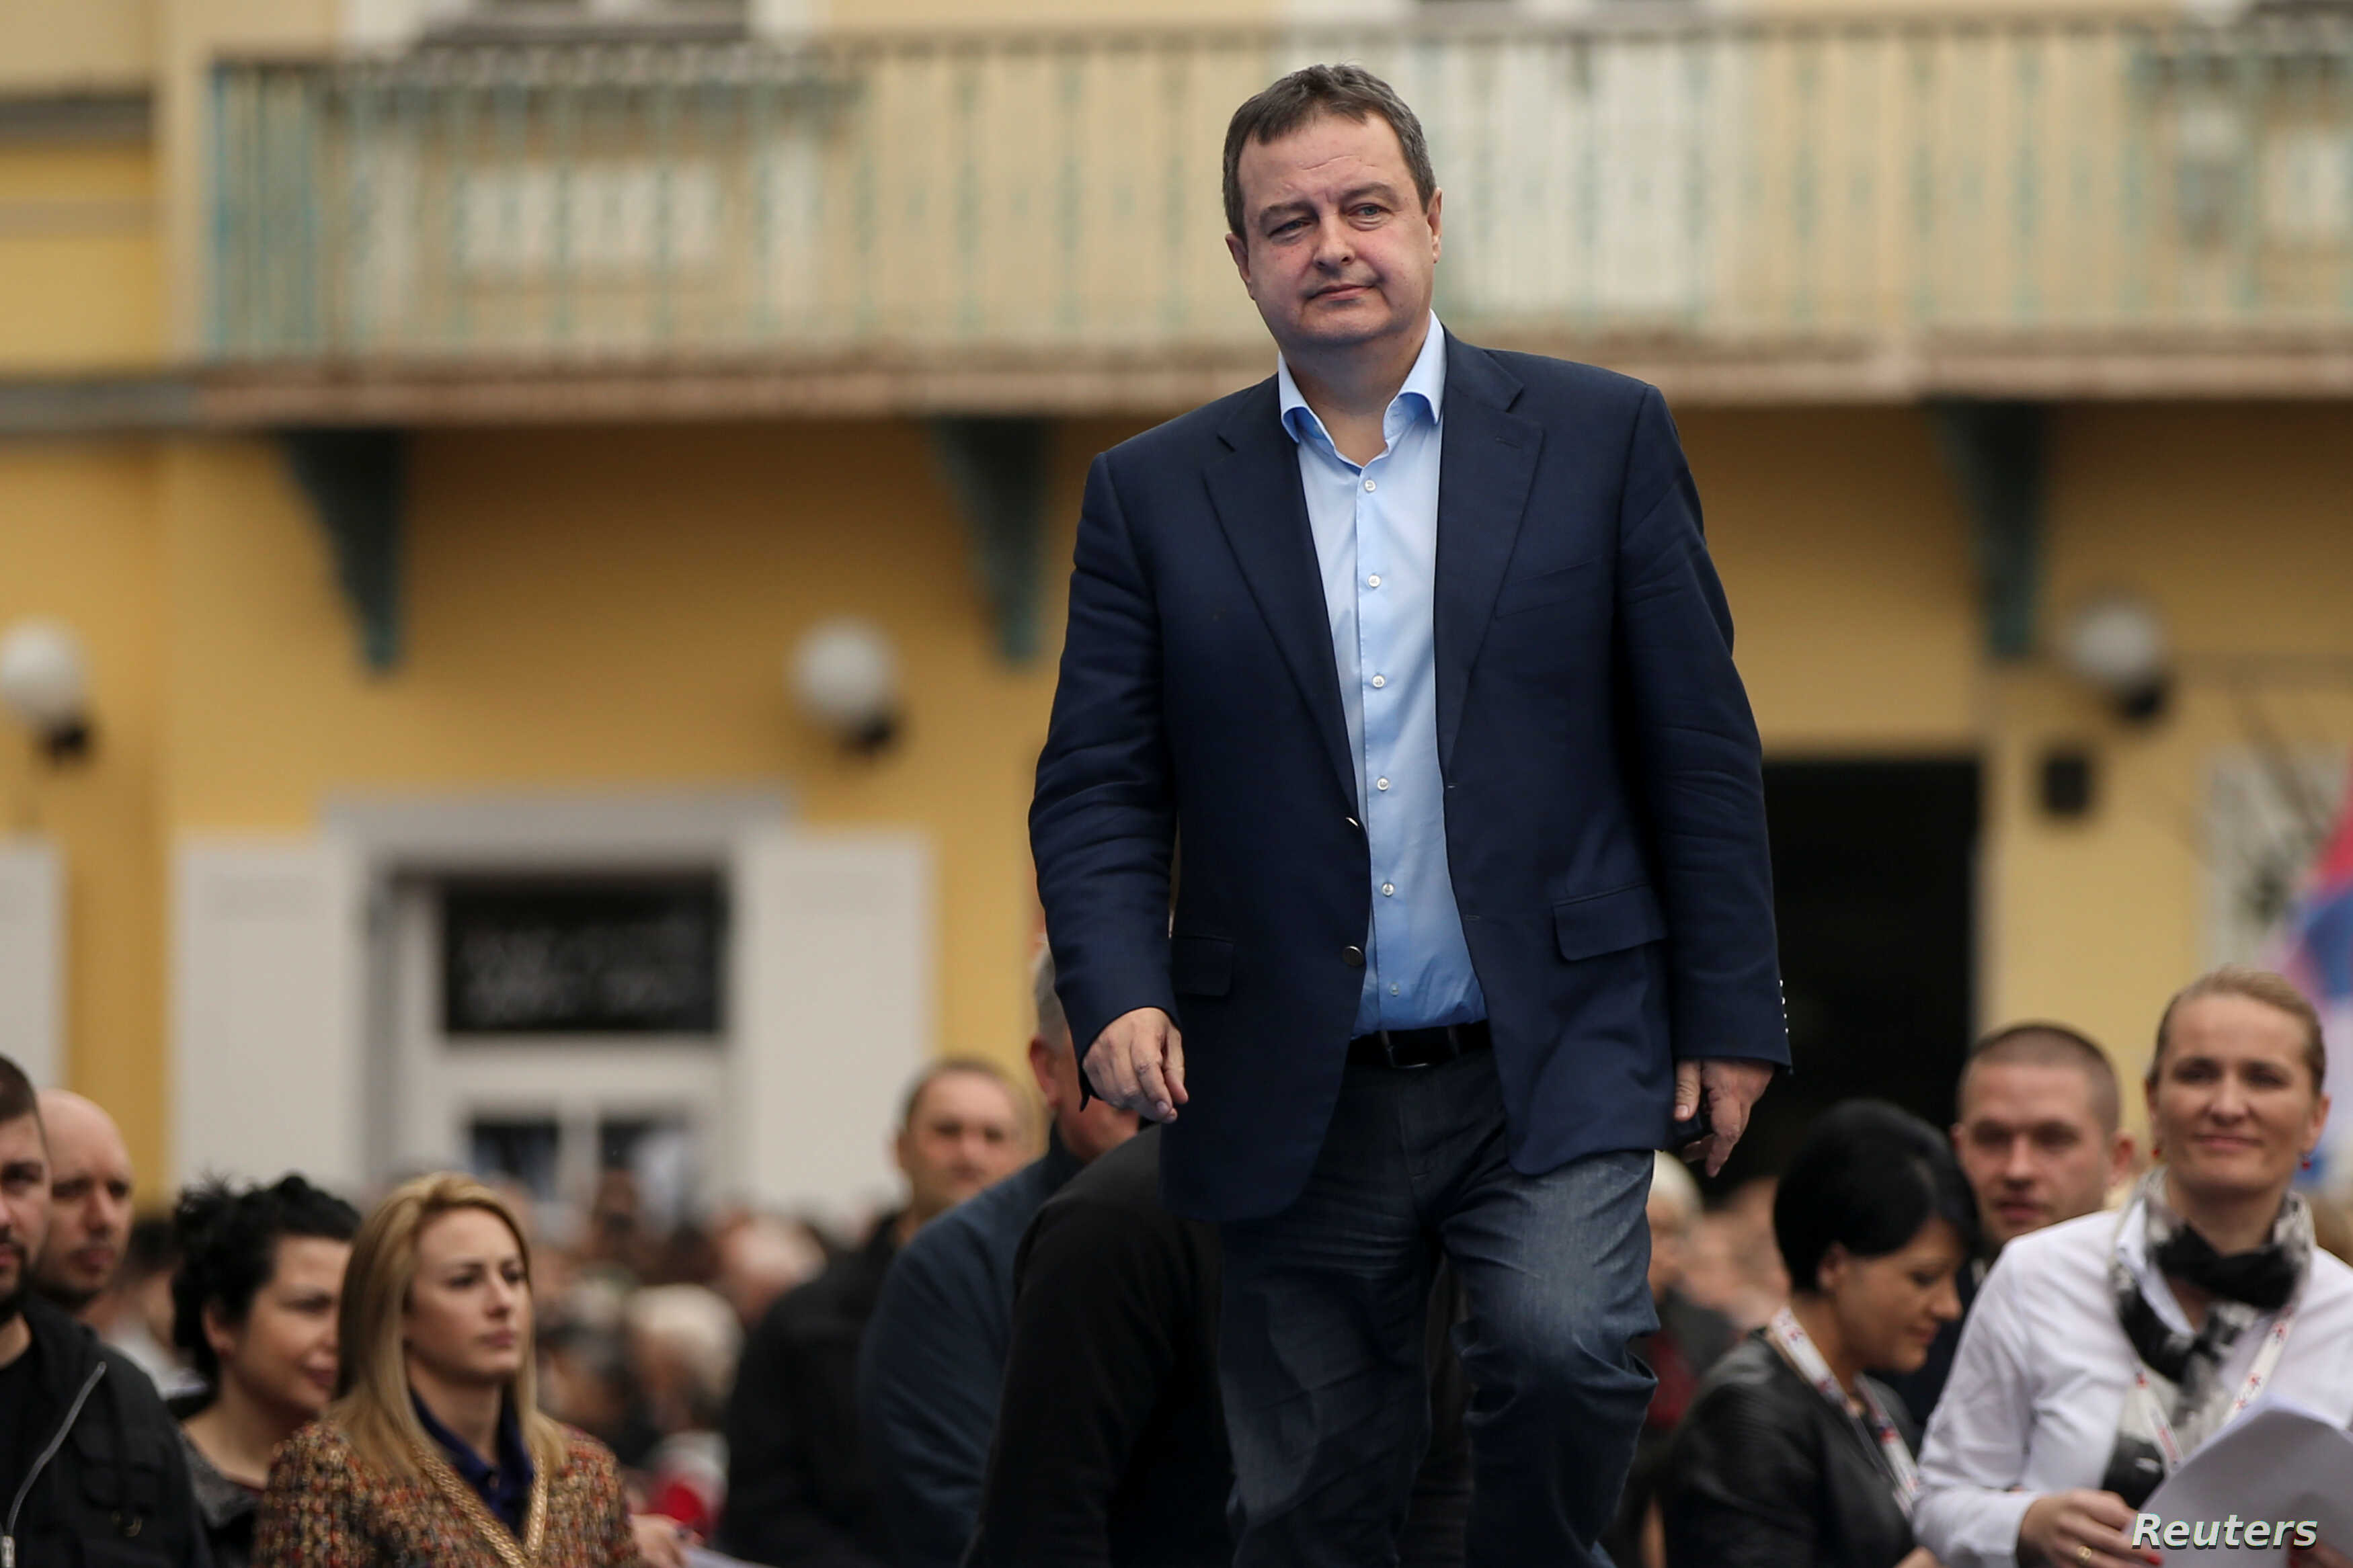 FILE - Serbia's Foreign Minister Ivica Dacic during a rally in Novi Sad, Serbia, March 18, 2017.